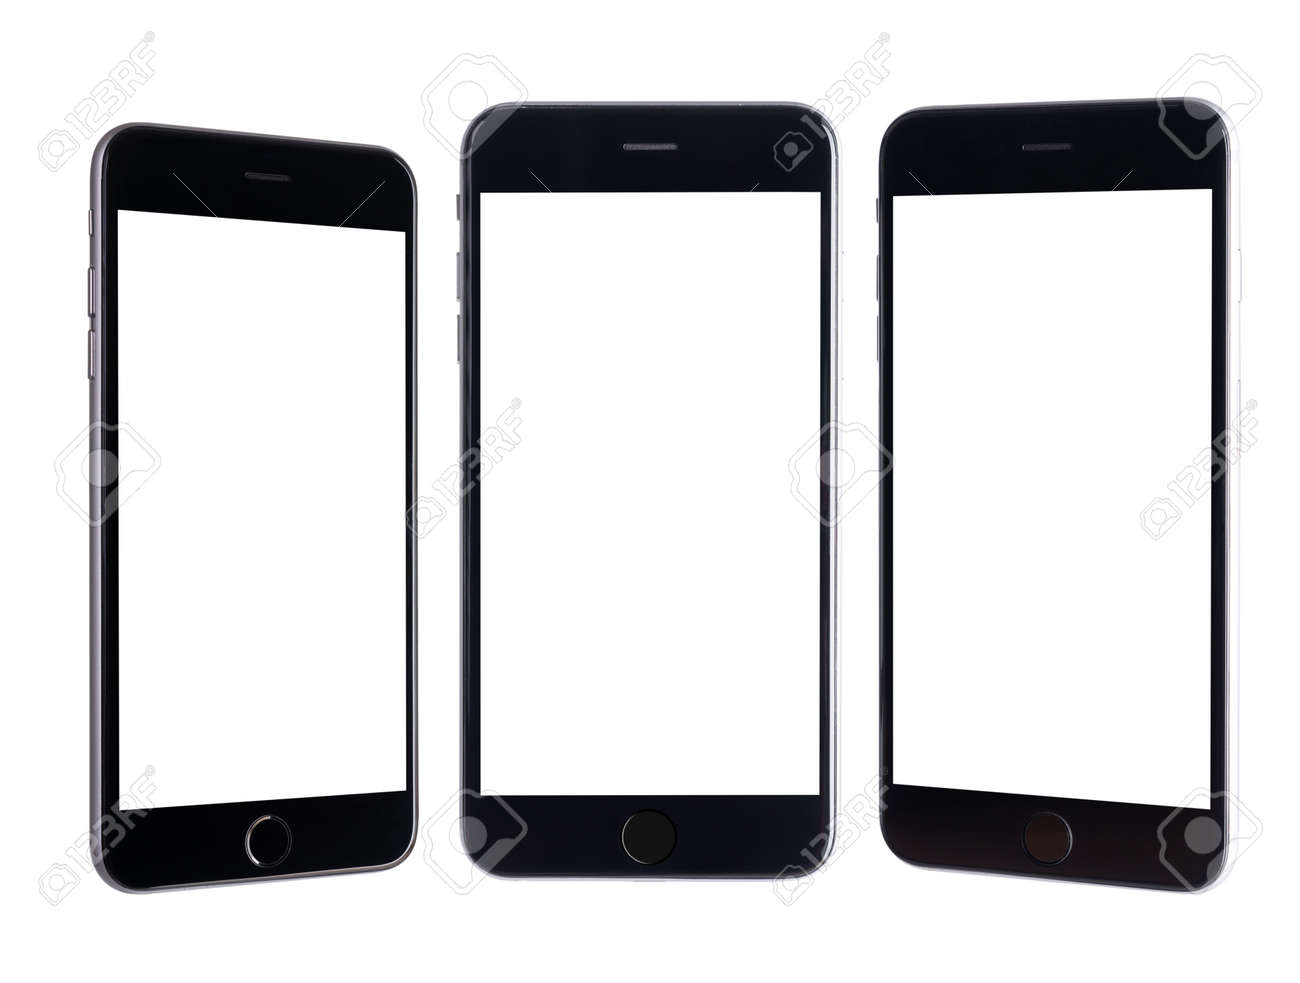 Black modern smartphone mockup. Mobile smart phone technology front blank screen studio shot isolated on over white background with clipping mask path on the phone and screen - 155876523